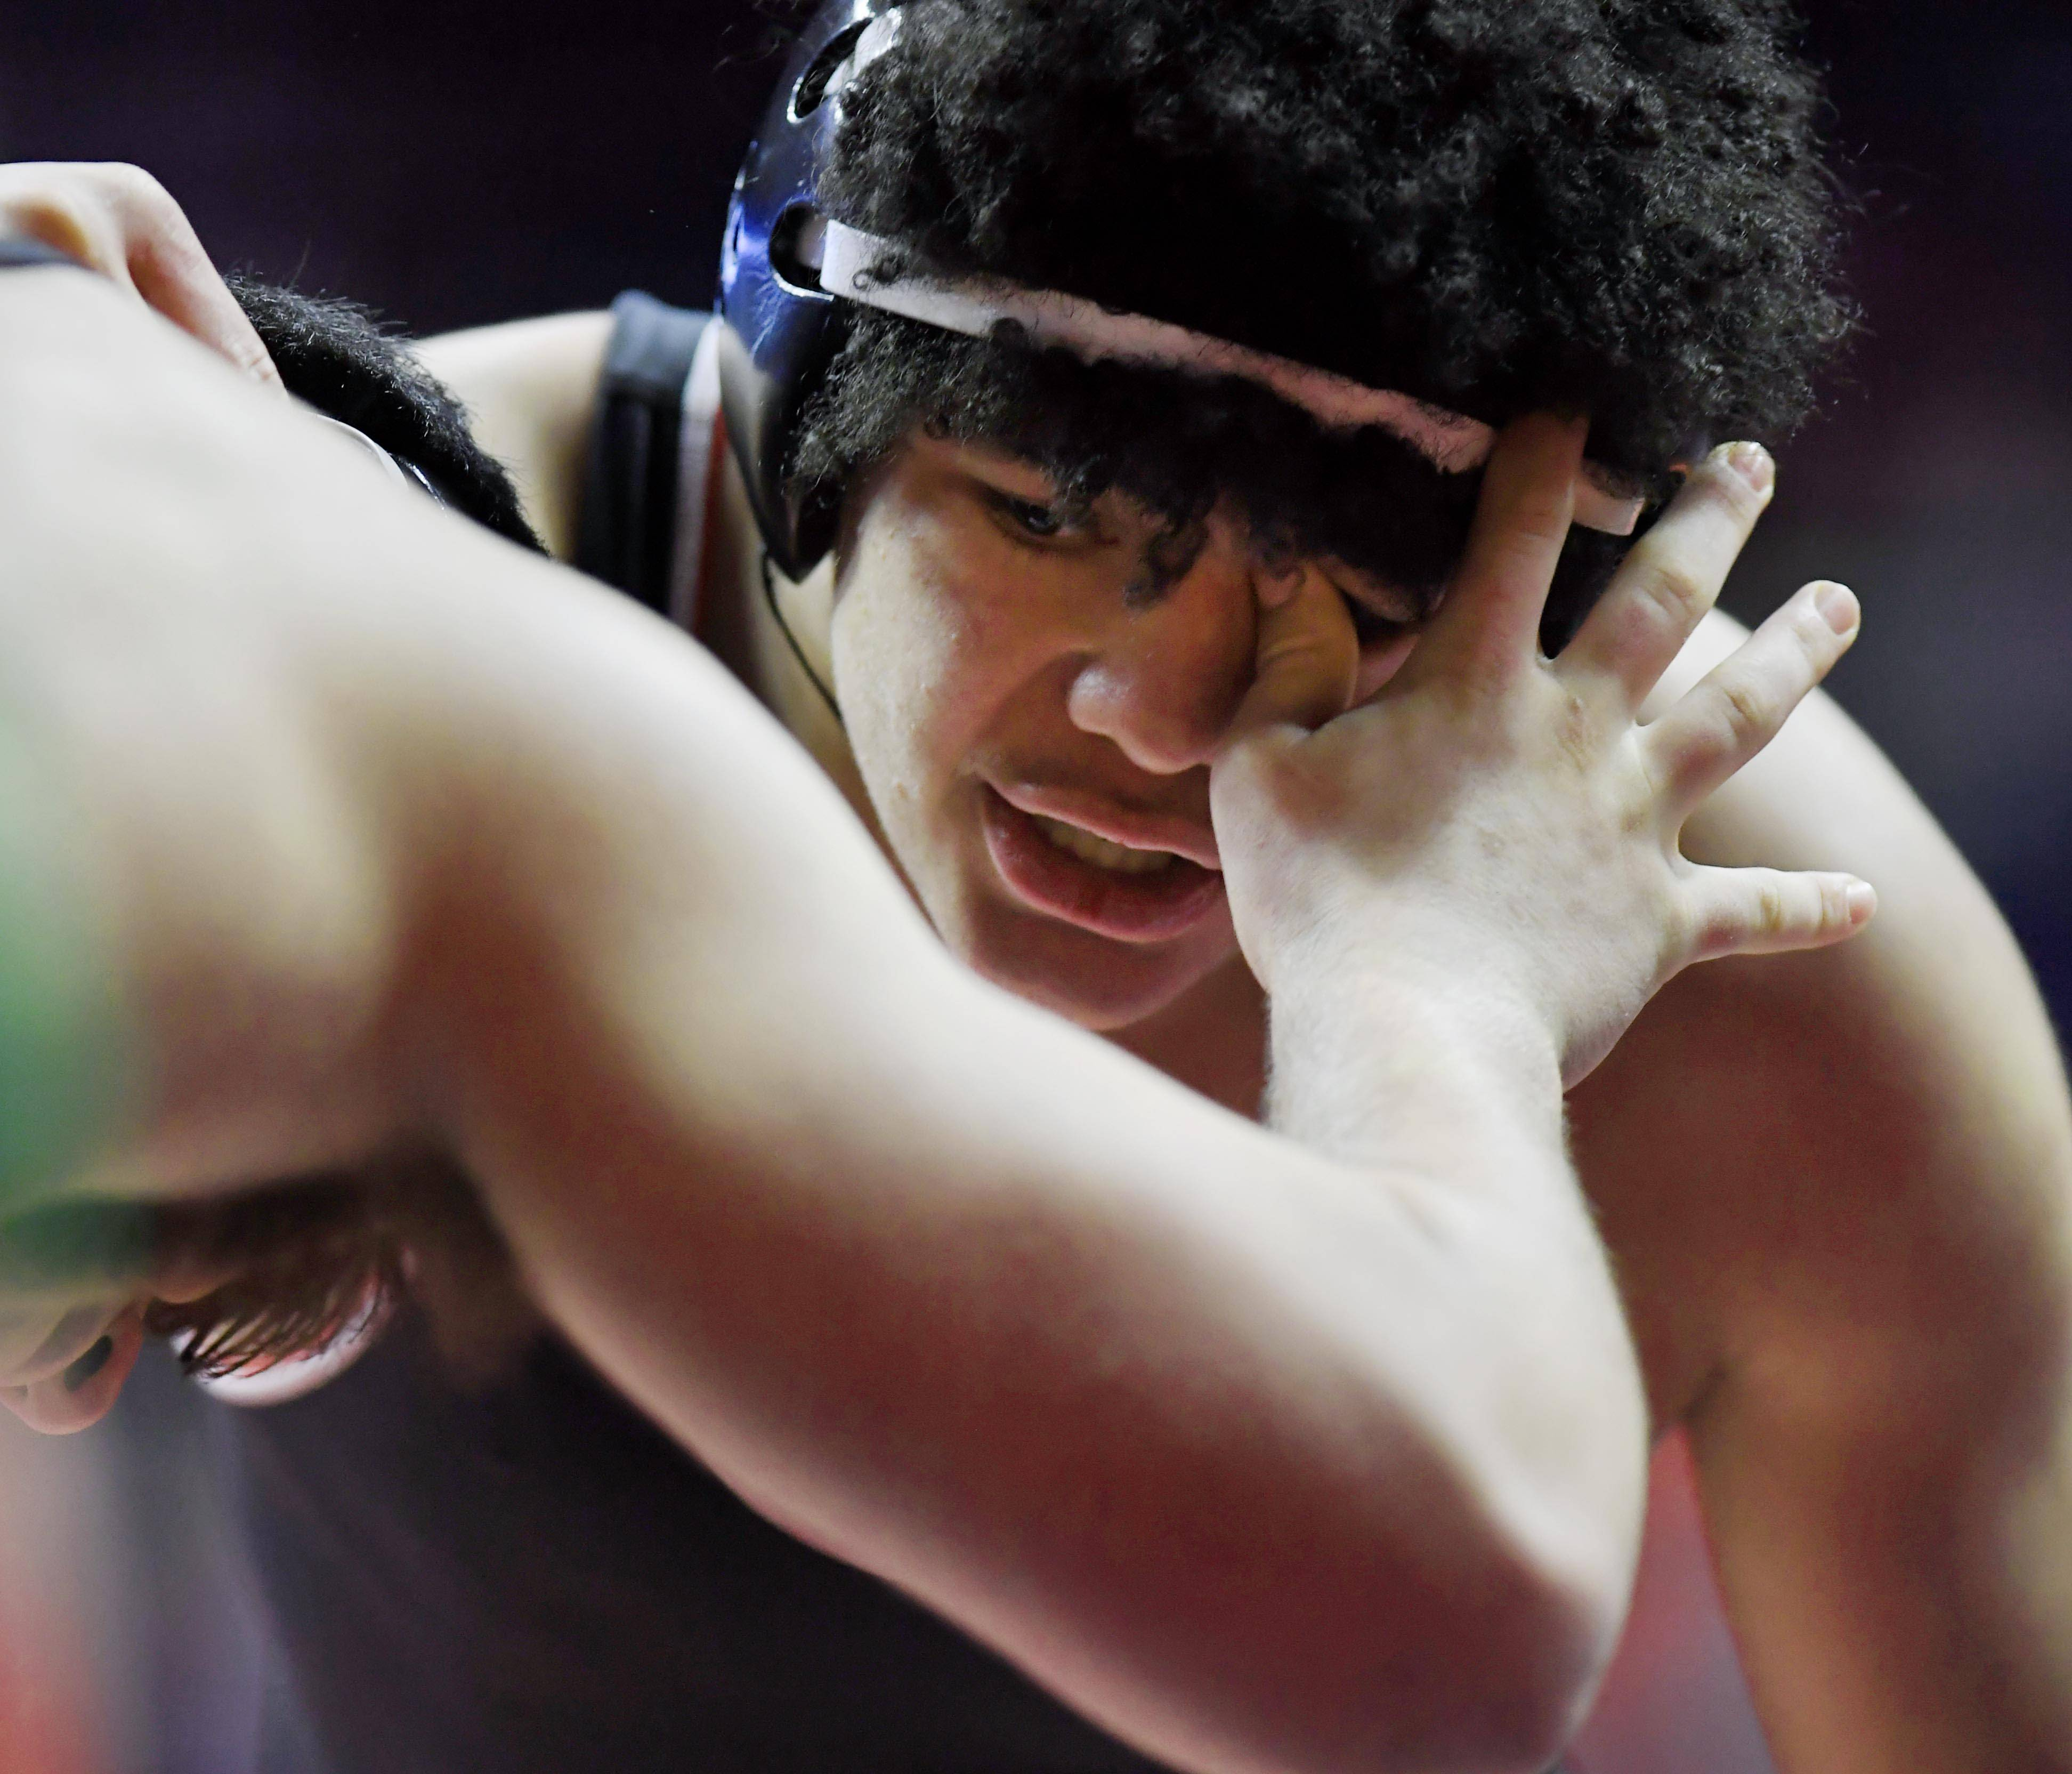 Barrington's Dayven Shinhoster gets poked in the eye by Deerfield's Cody Goodman in the Class 3A 195-pound semifinal wrestleback bout at the 2019 IHSA wrestling state championships at State Farm Center at the University of Illinois in Champaign Saturday.